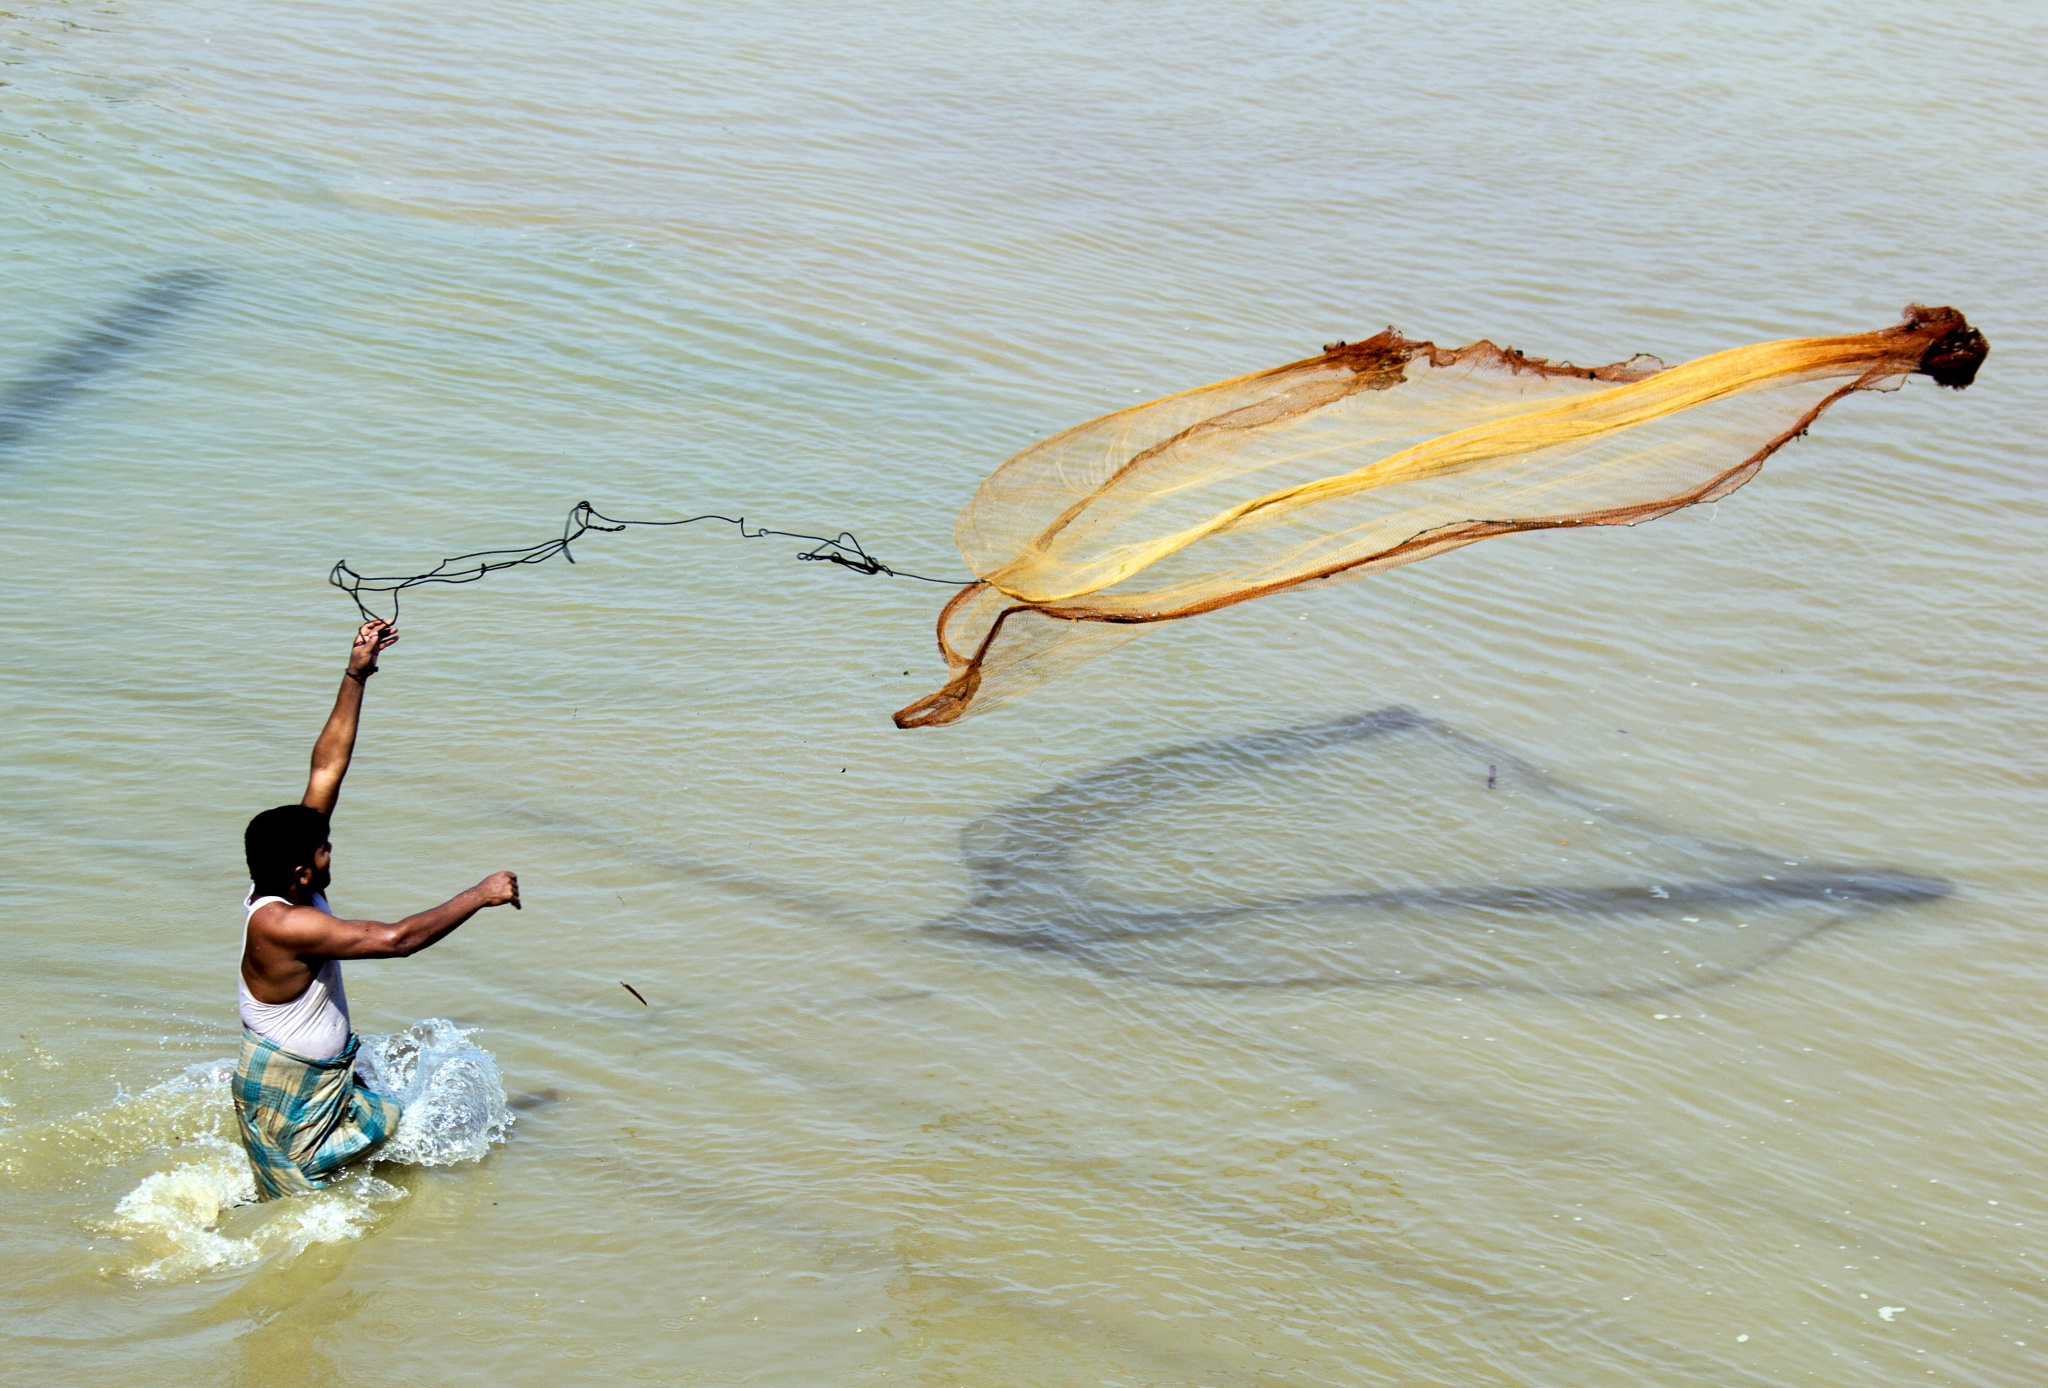 Fishing by Arunkumar Banik